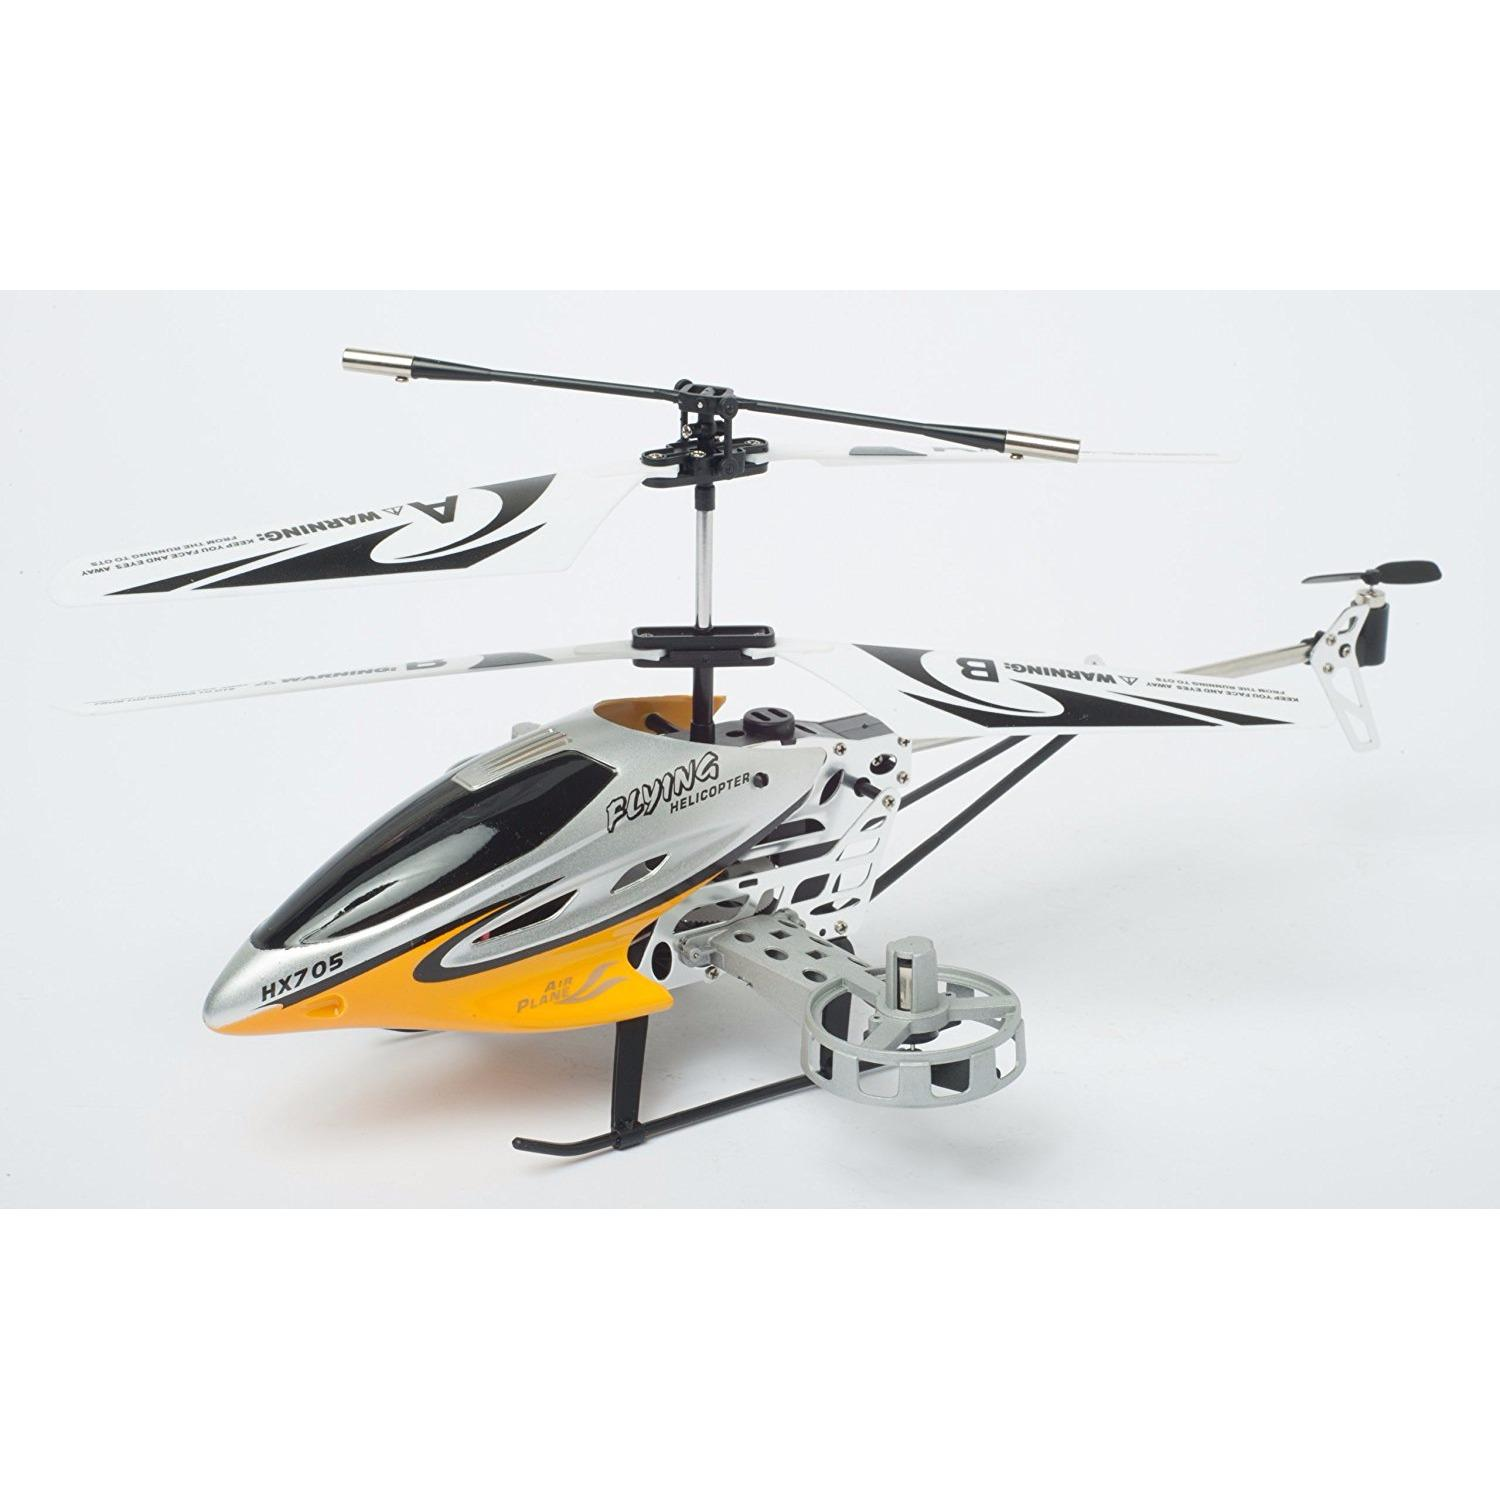 Rp 325000 RC Helicopter HX705 Body Alloy Model 4Channel Infrared ControlIDR325000 335000 Shell Helix HX7 10W 40 Semi Synthetic 4 Liter IDR335000